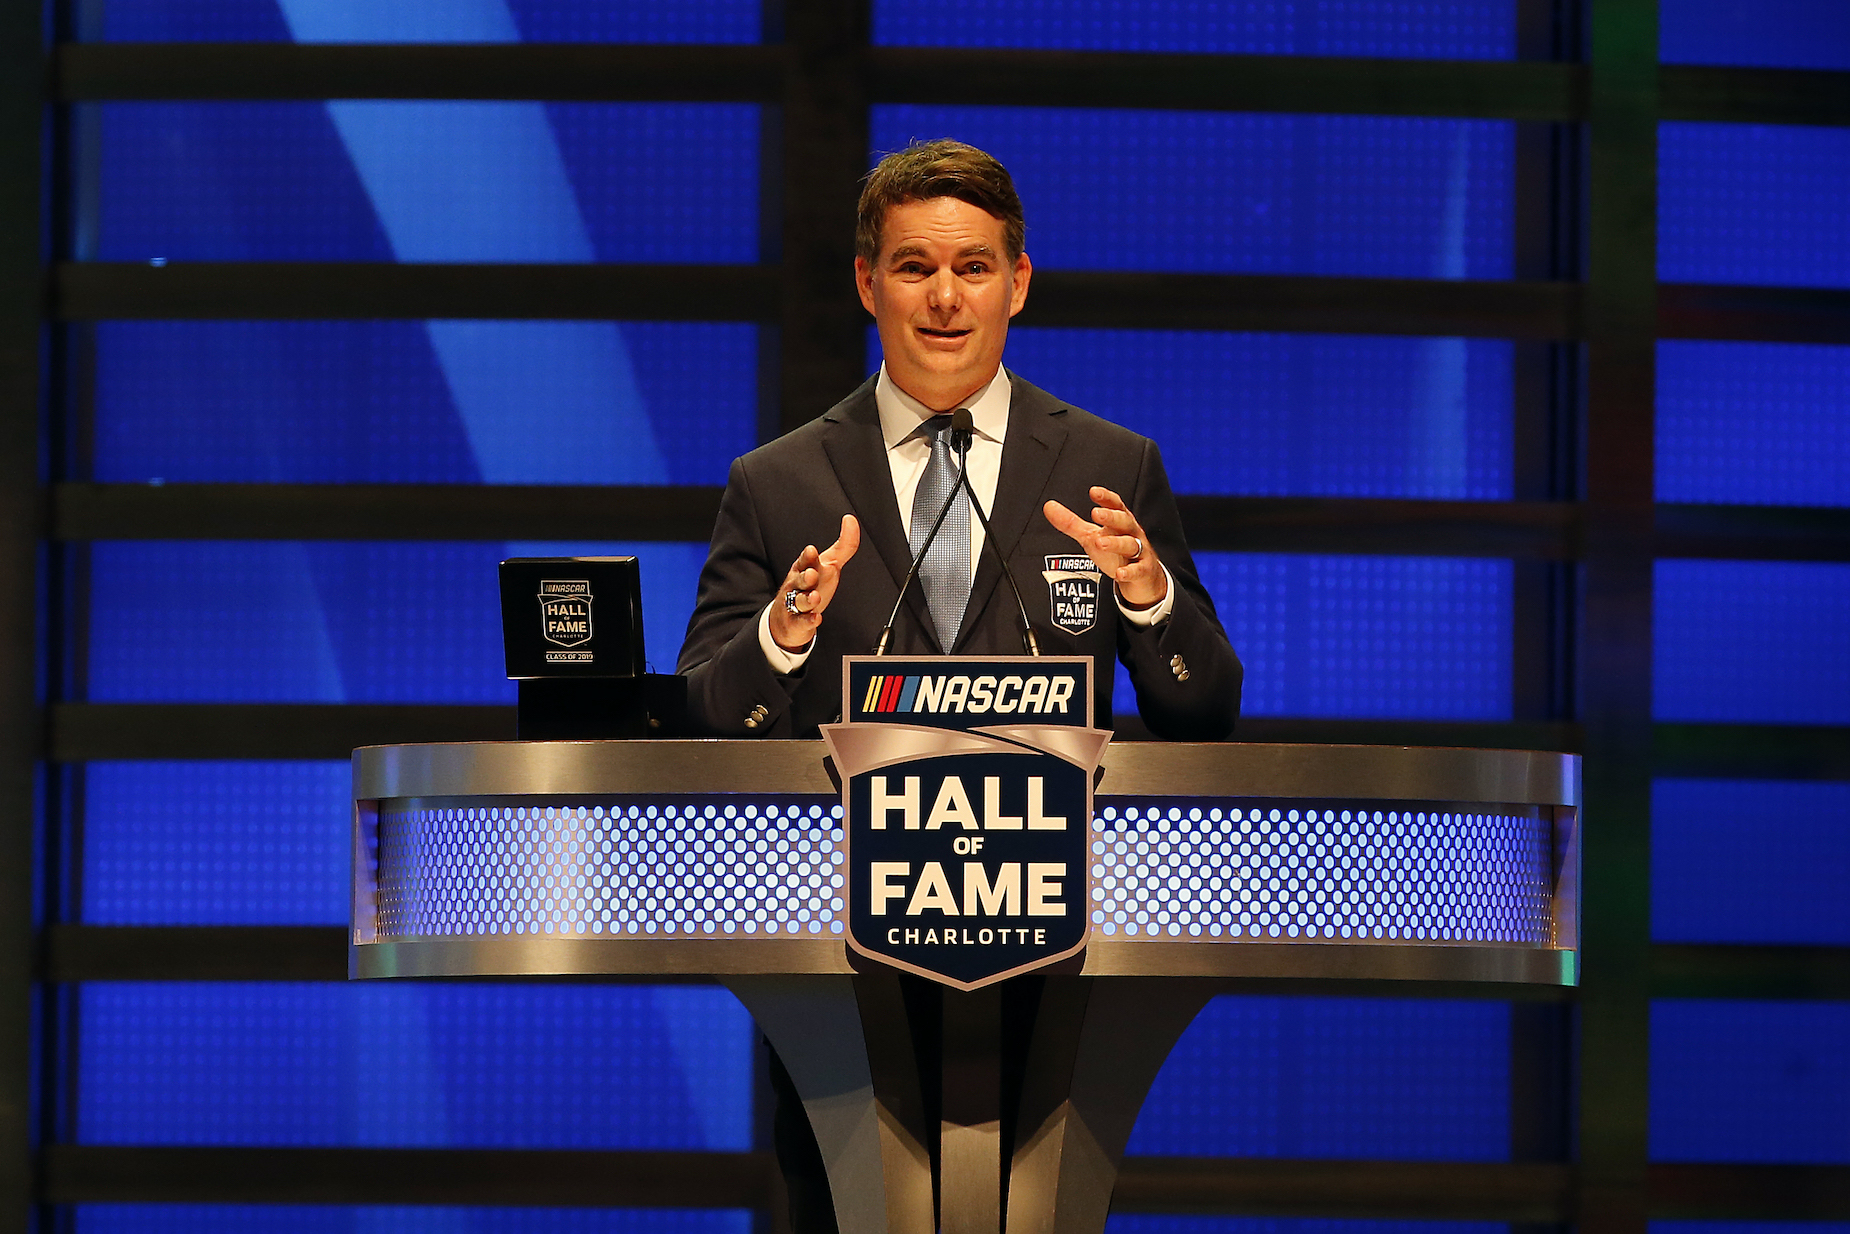 Jeff Gordon gives a speech during his induction into the NASCAR Hall of Fame.